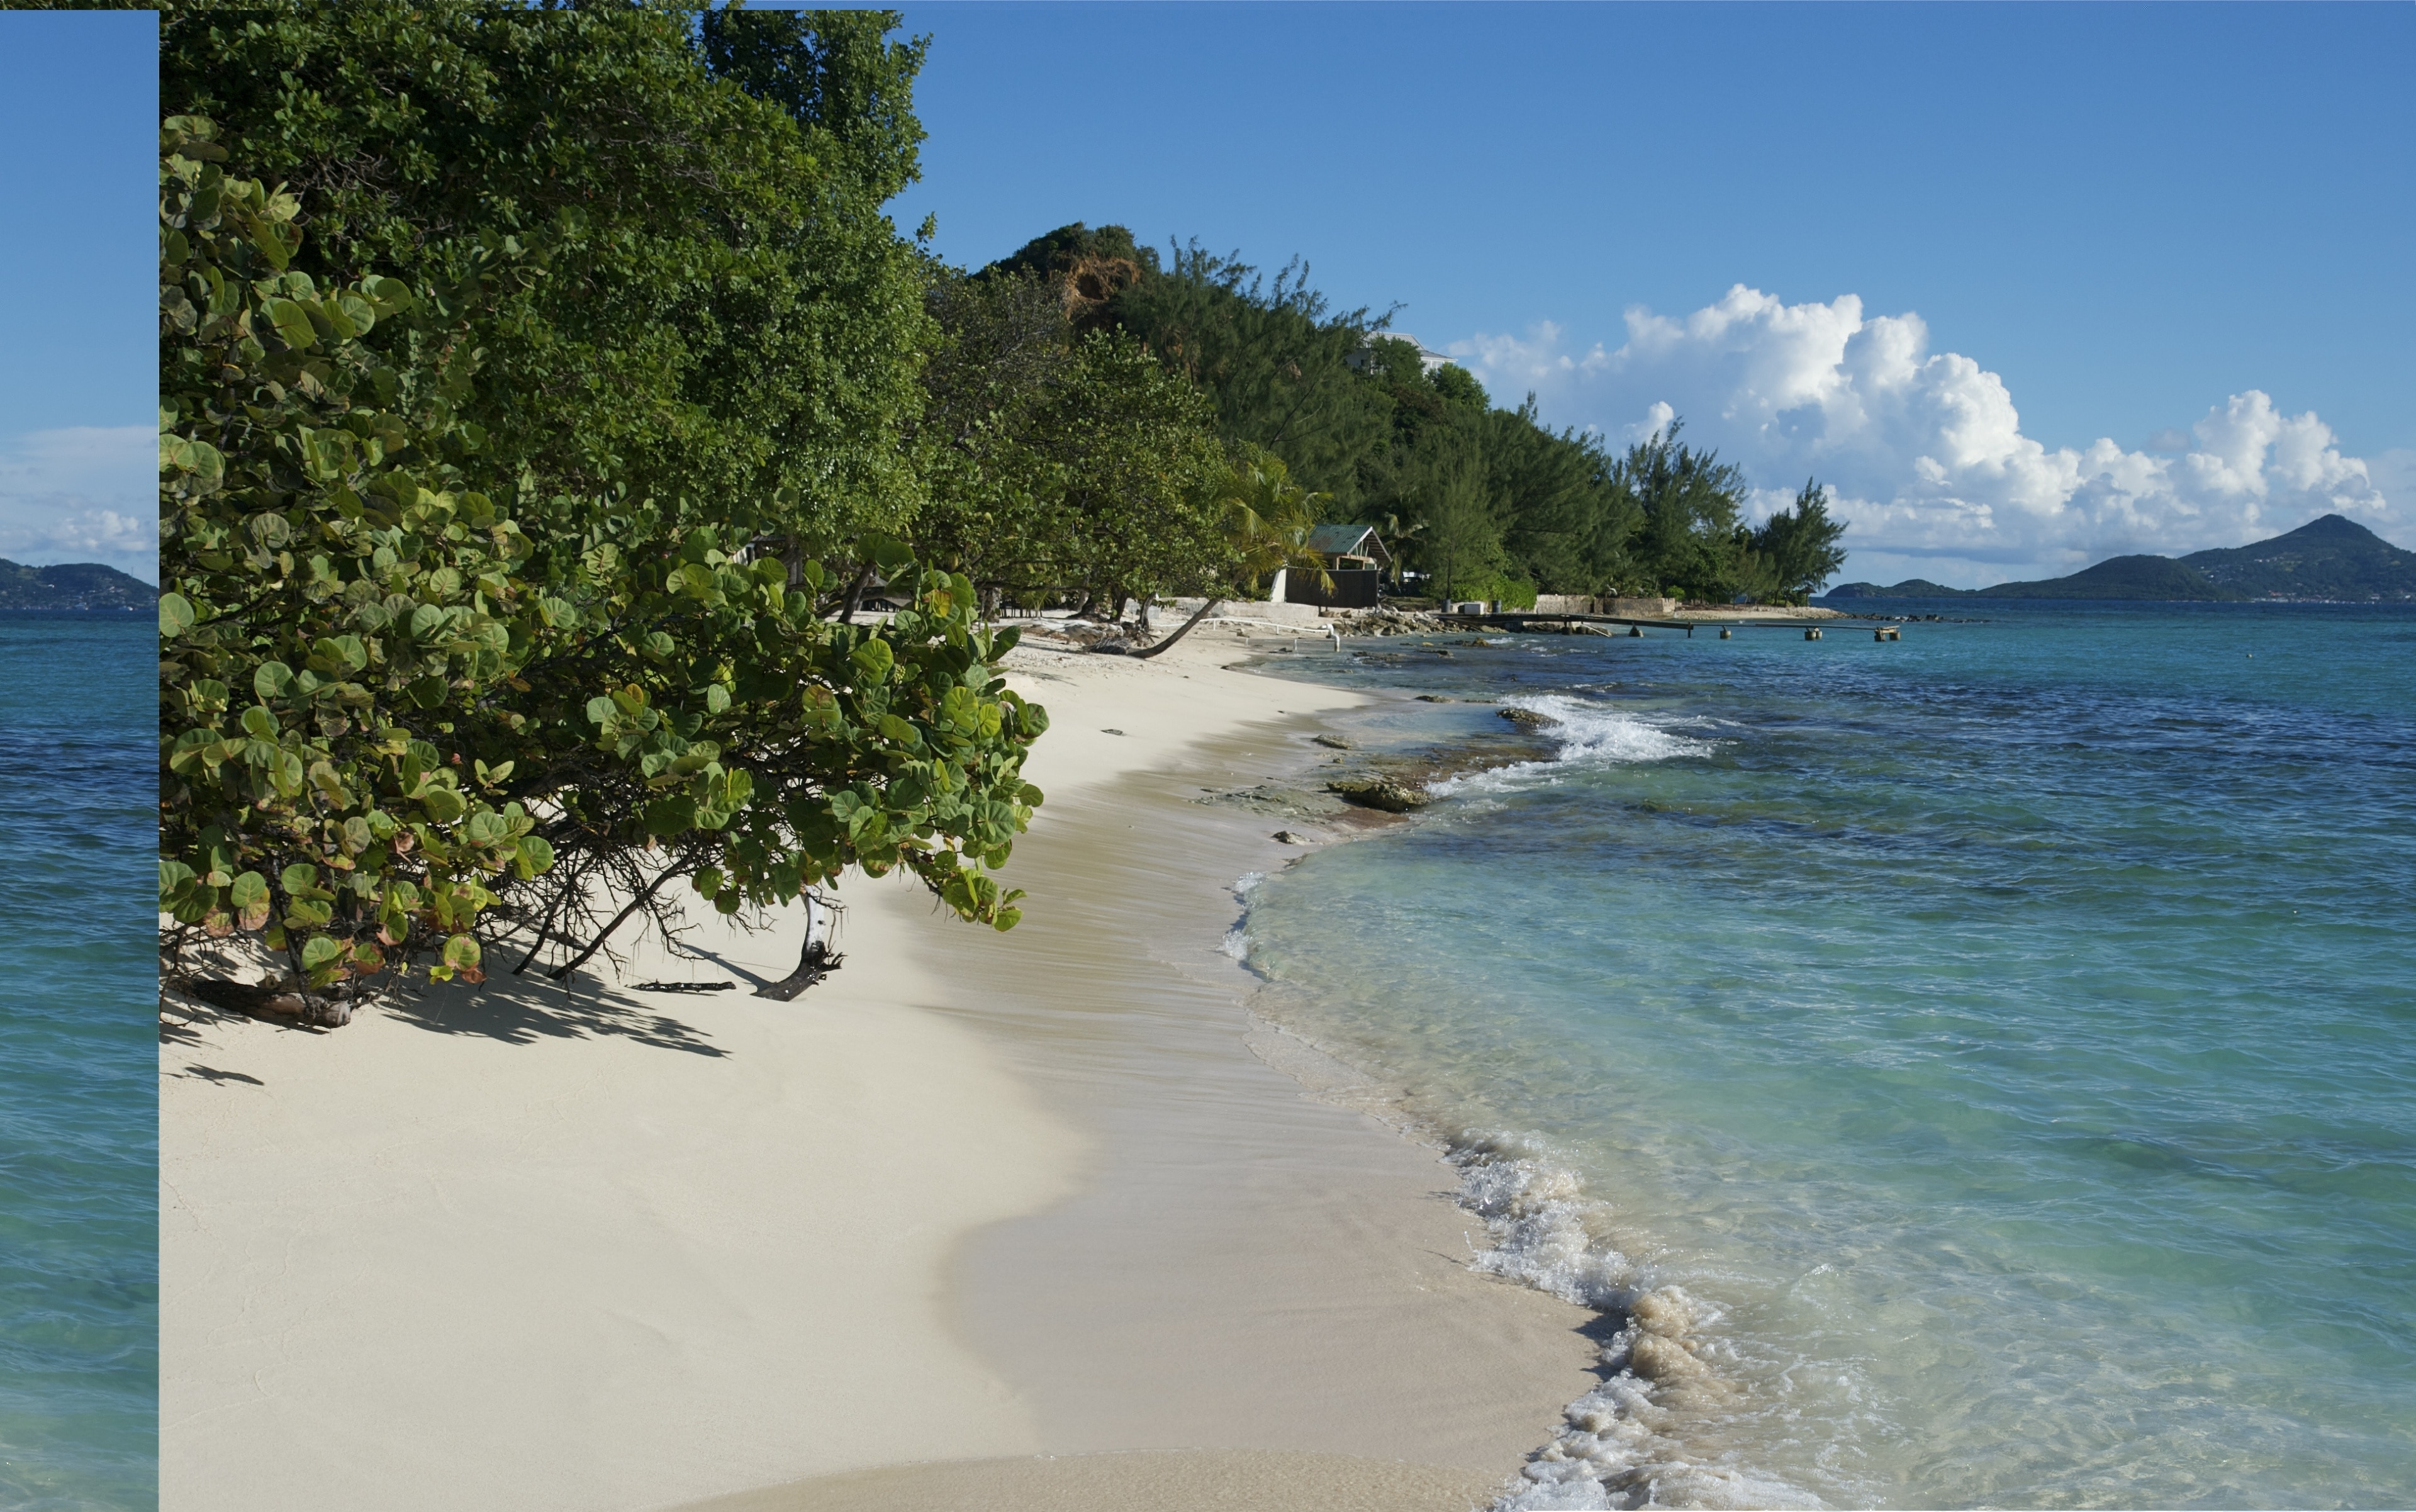 Grenadines, St. Vincent and the Grenadines